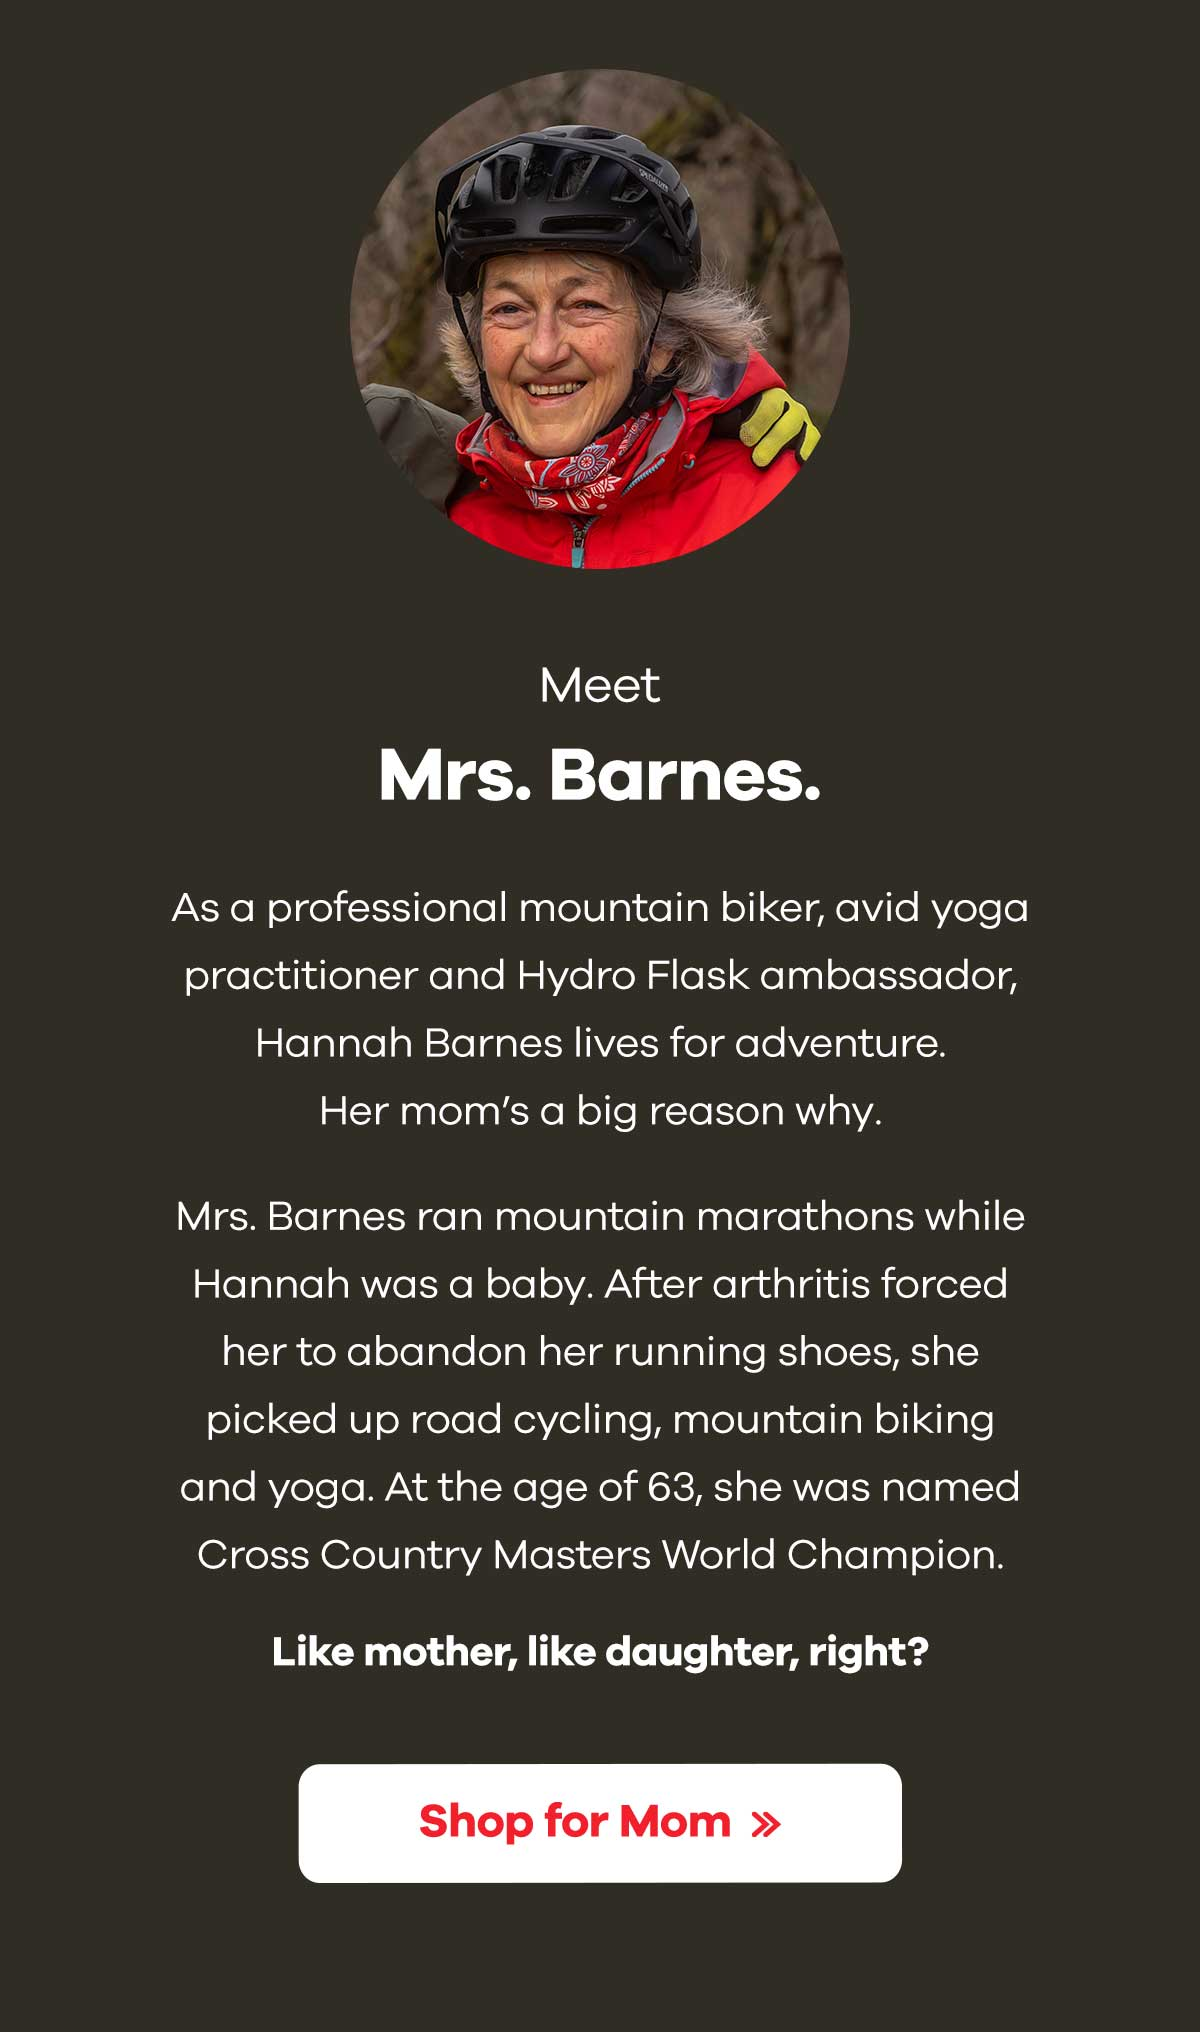 Meet Mrs. Barnes. - As a professional mountain biker, avid yoga practictioner and Hydro Flask ambassador, Hannah Barnes lives for adventure. Her mom''s a big reason why. Mrs. Barnes ran mountain marathons while Hannah was a baby. After arthritis forced her to abandon her running shoes, she picked up road cycling, mountain biking and yoga. At the age of 63, she was named Cross Country Masters World Champion. Like mother, like daughter, right? | Shop for Mom